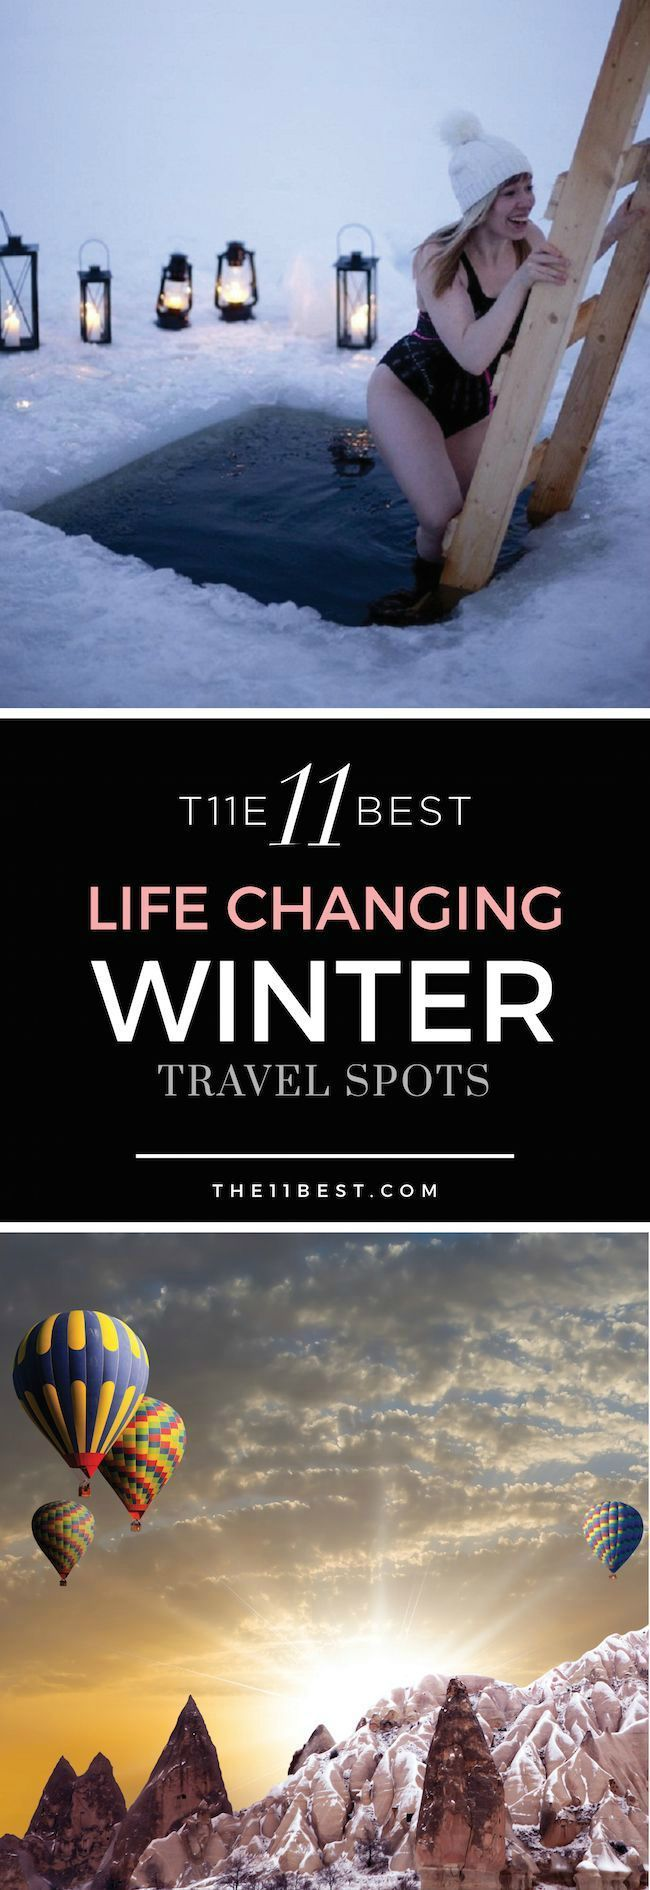 The 11 Best Life Changing Winter Travel Spots. This is winter travel at its best. Lots of trip ideas here.